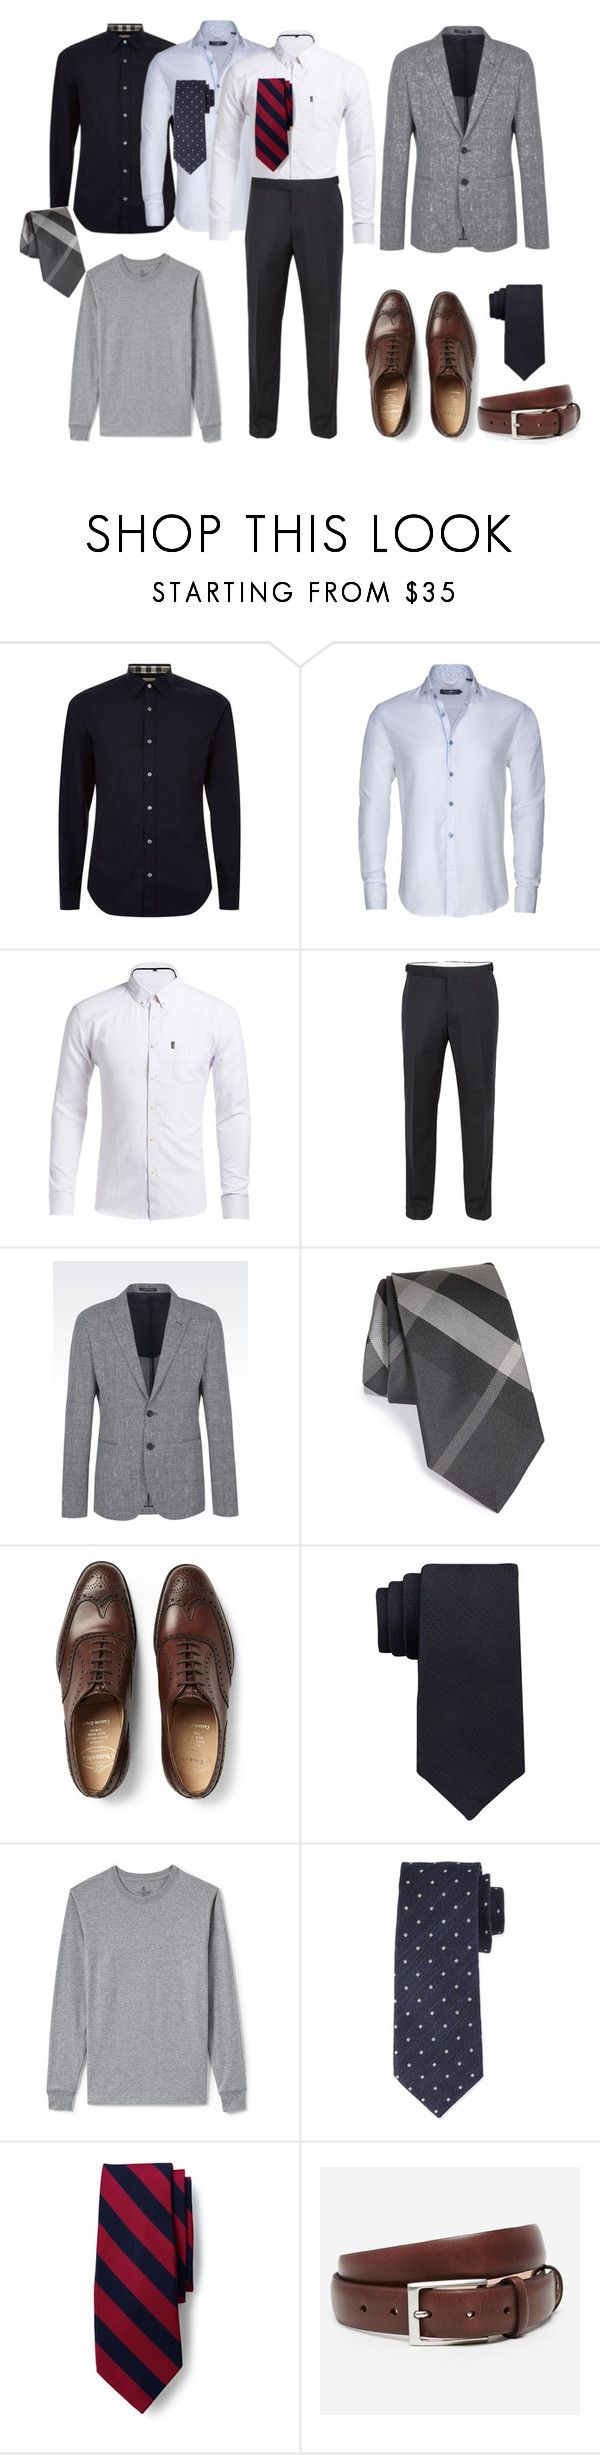 Мини-капсула делового гардероба by repriza on Polyvore featuring Burberry, Stone Rose, Lands' End, Paul Costelloe, Emporio Armani, Church's, Tom Ford, Bonobos, Calvin Klein and men's fashion